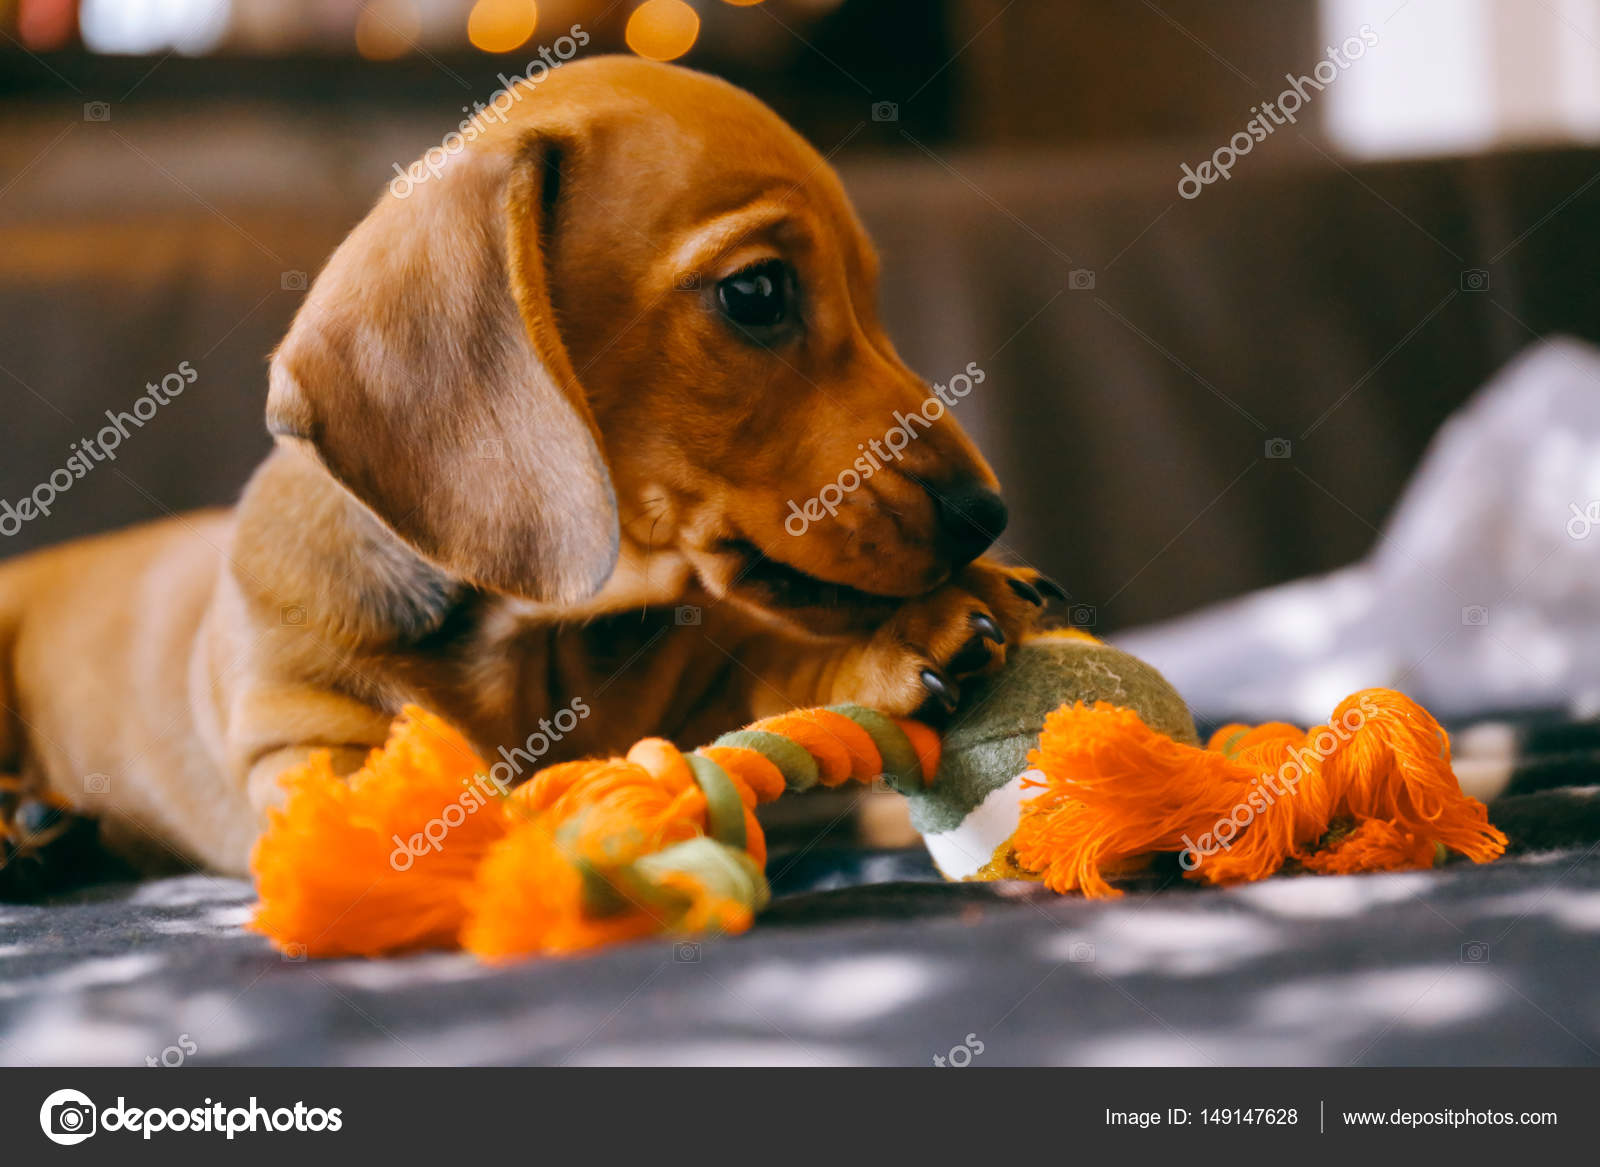 Dachshund Puppy Plays With A Toy Stock Photo C Alenakr 149147628